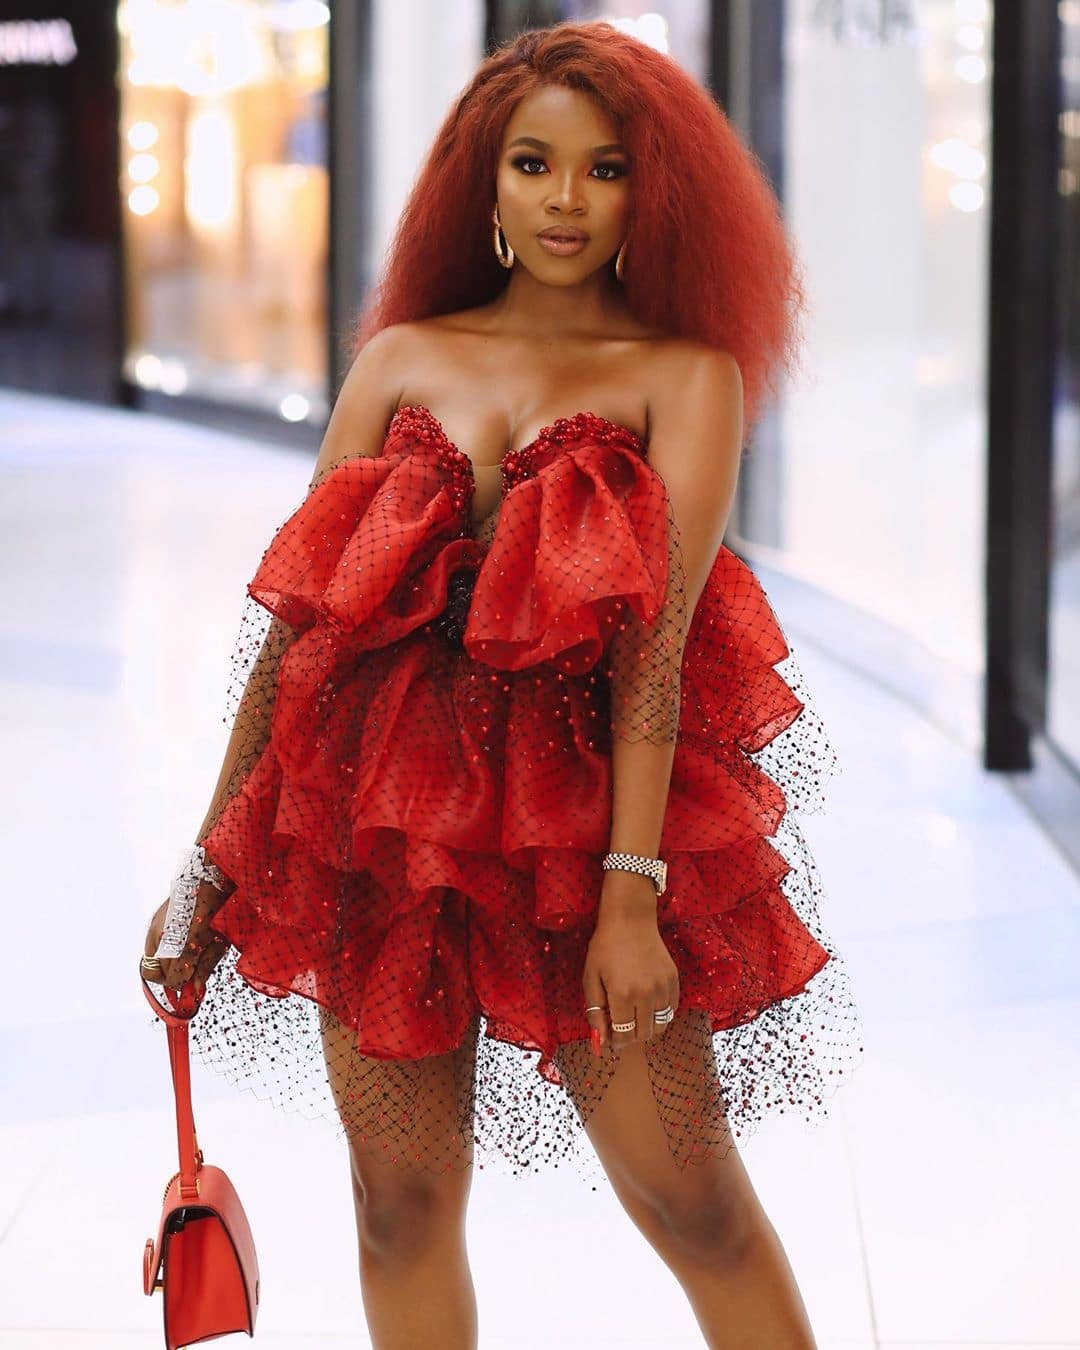 Melody-molale-south-africa-the-most-rave-worthy-looks-on-women-across-africa-african-celebs-style